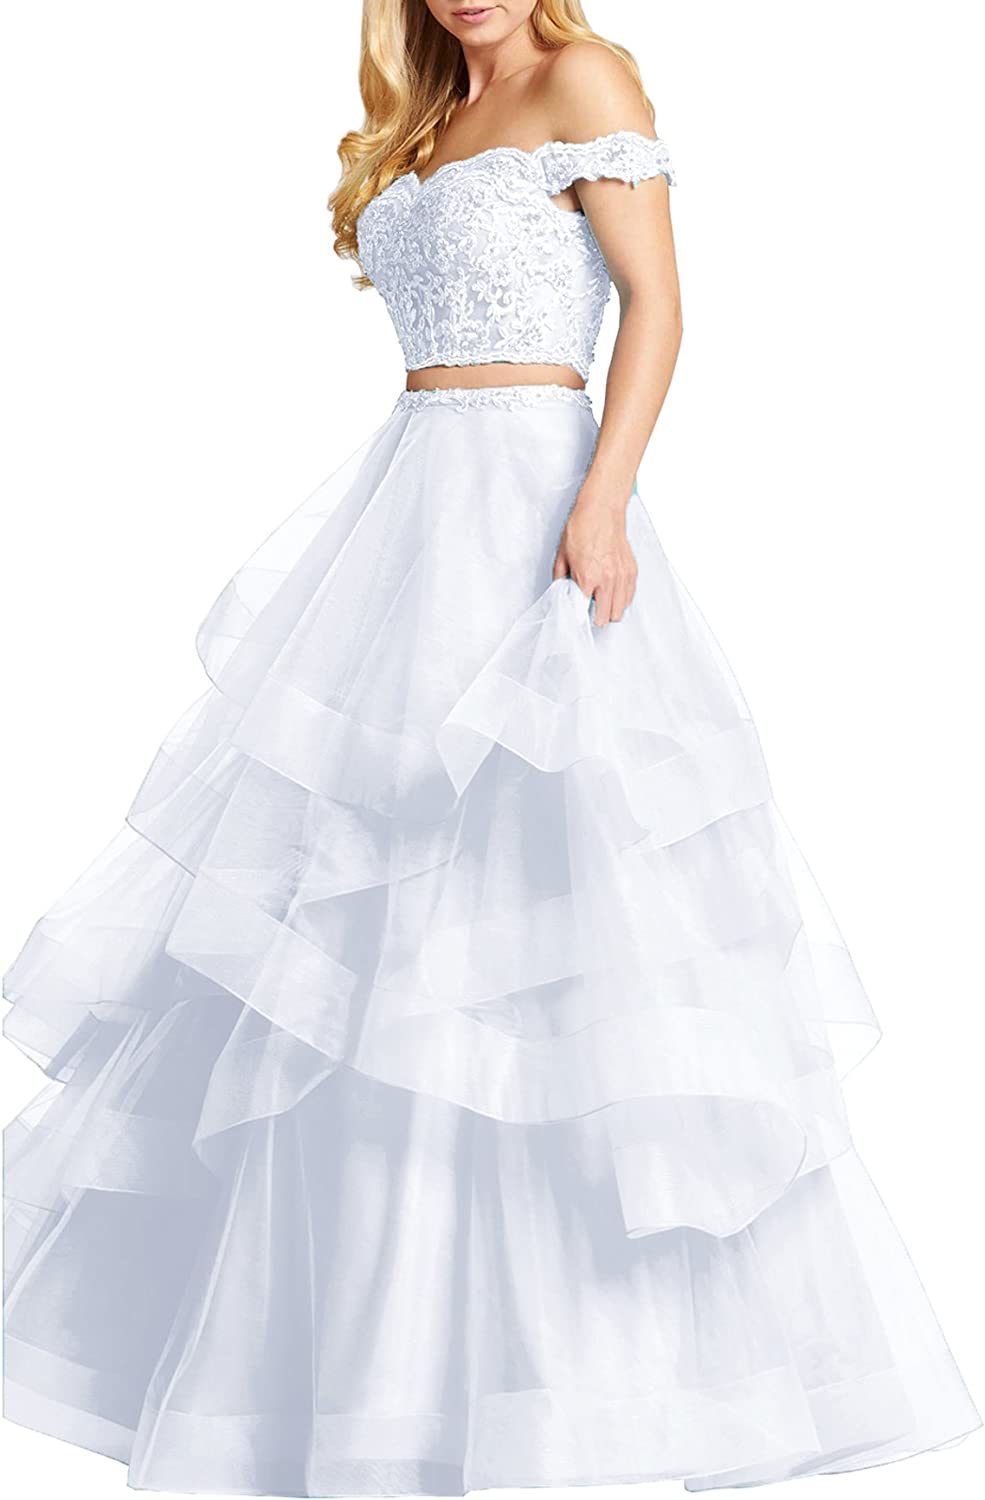 Beauty Bridal Shoulder Two Piece Prom Dresses Asymmetric Layered Evening Party Gowns